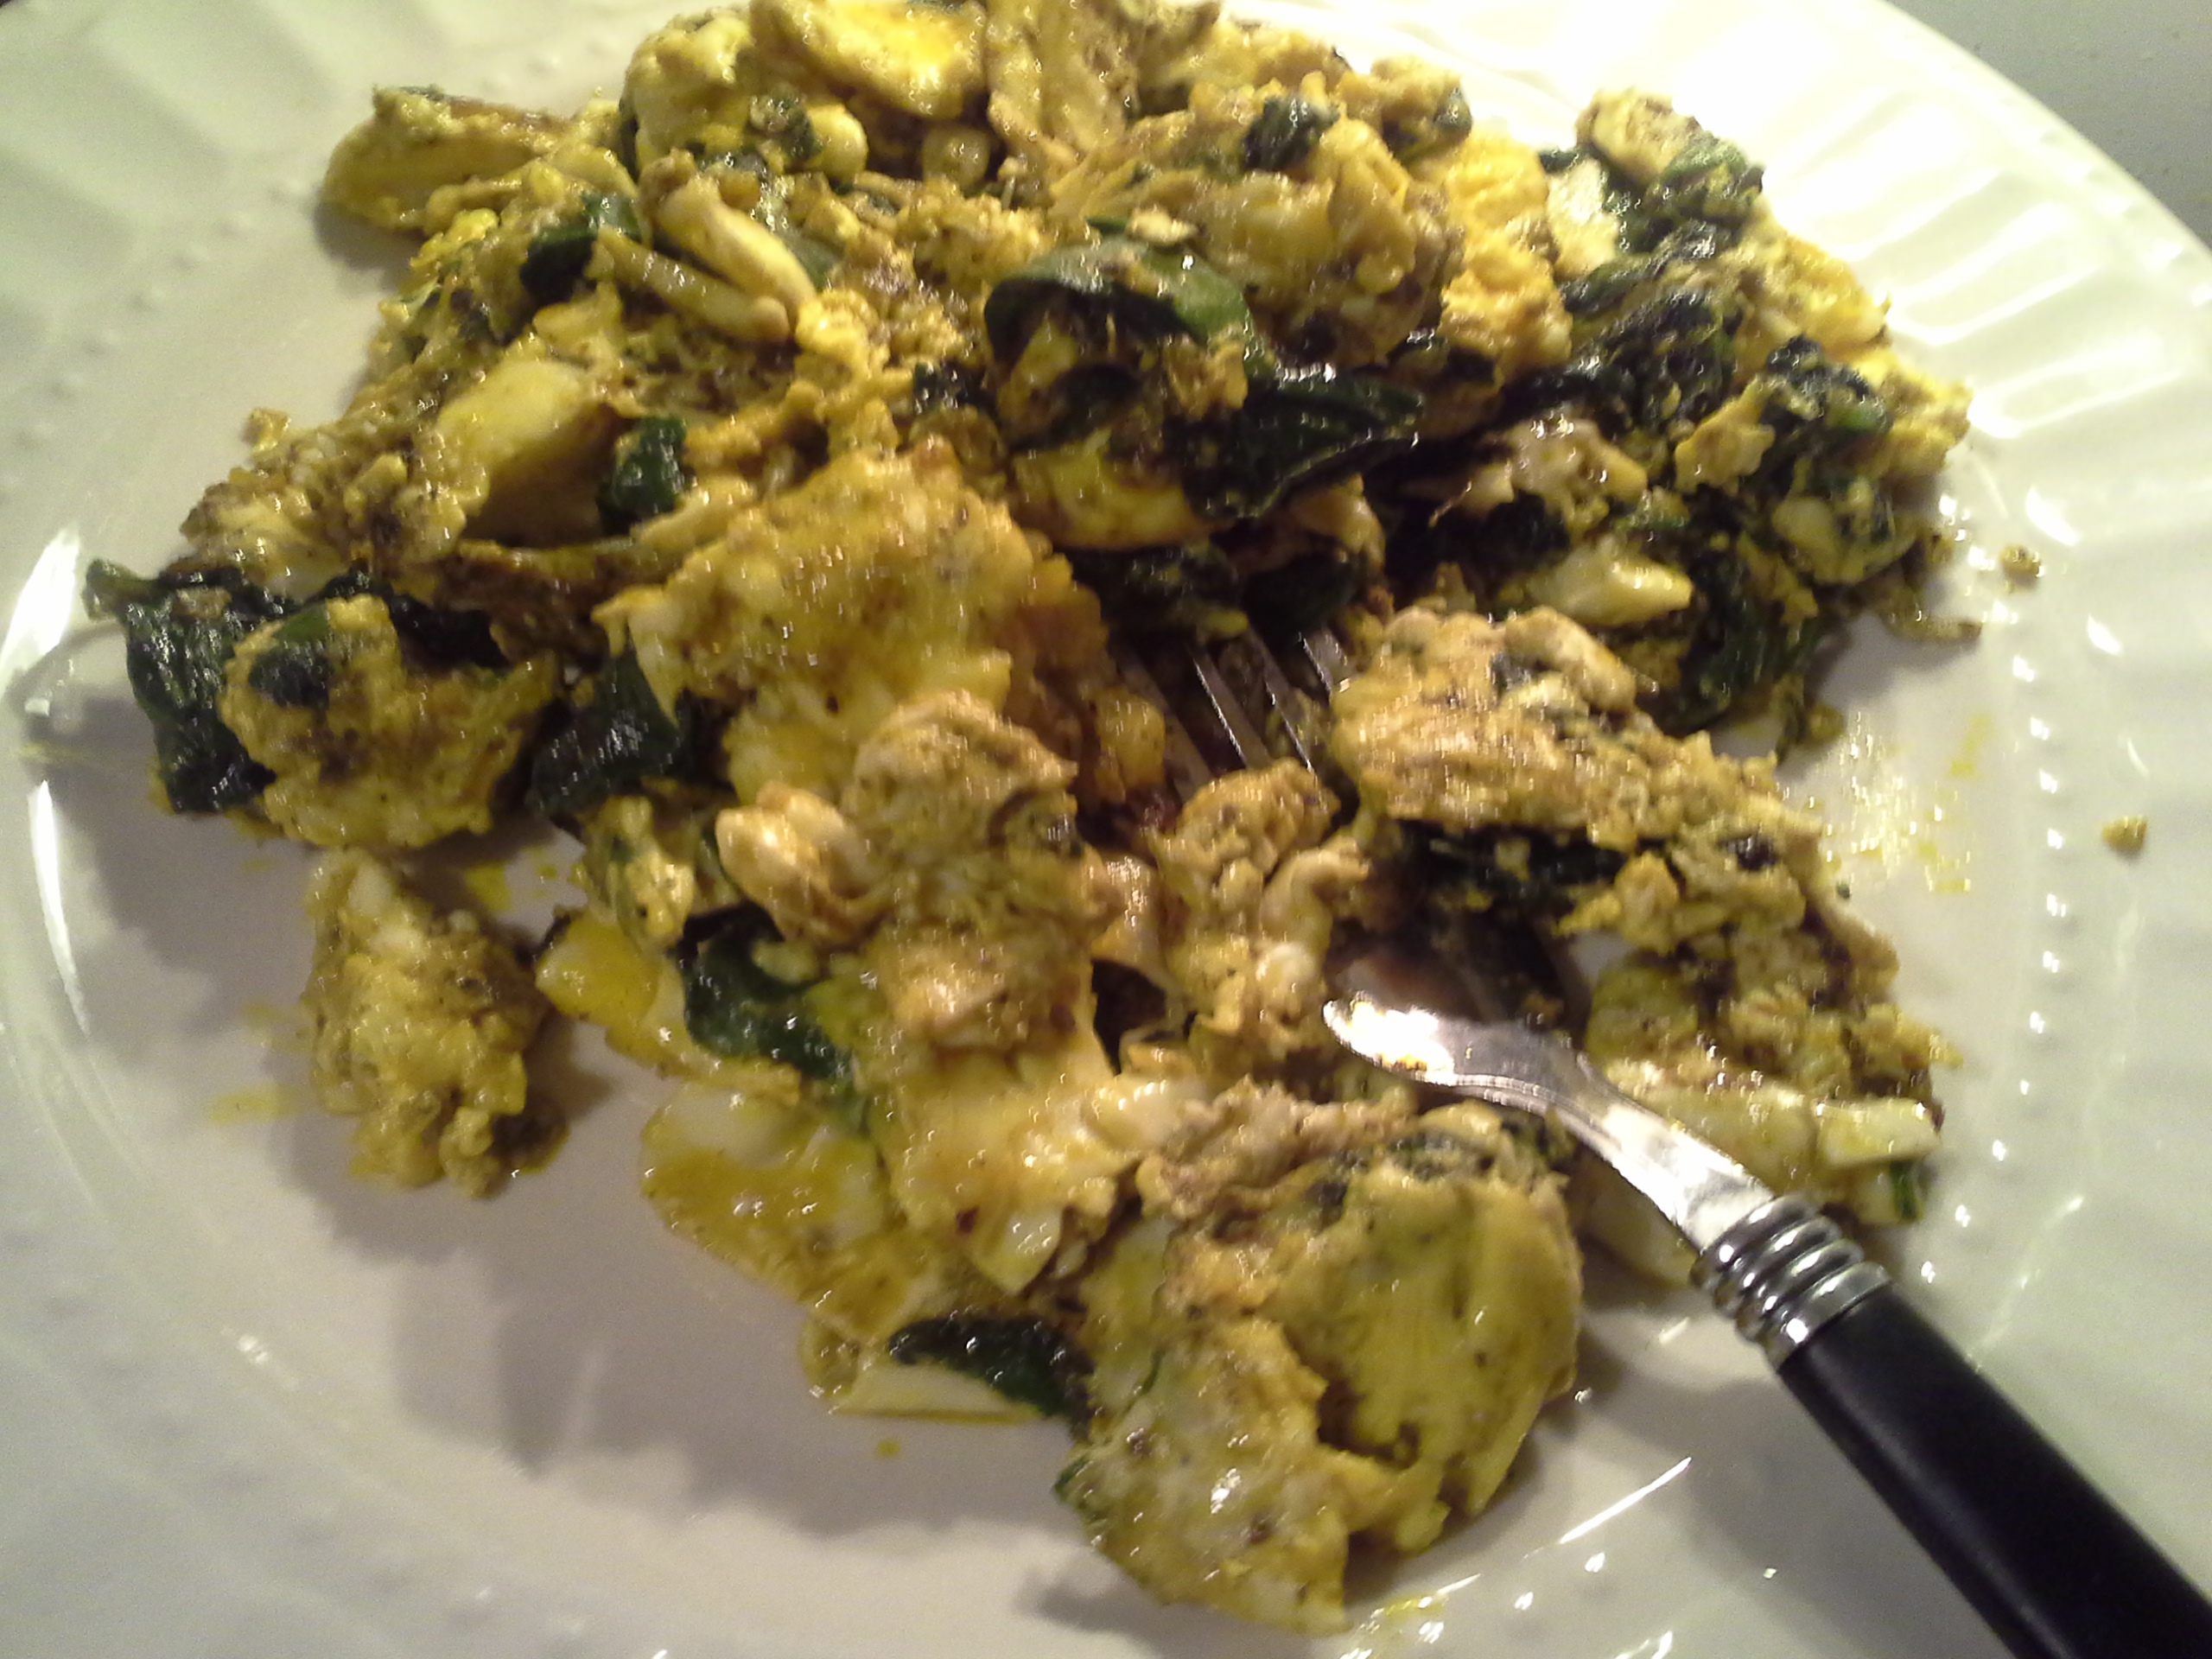 Lunch: 5:50 p.m. | 4 eggs, greens mix, 2 Tbsp. red palm oil, herbs & spices